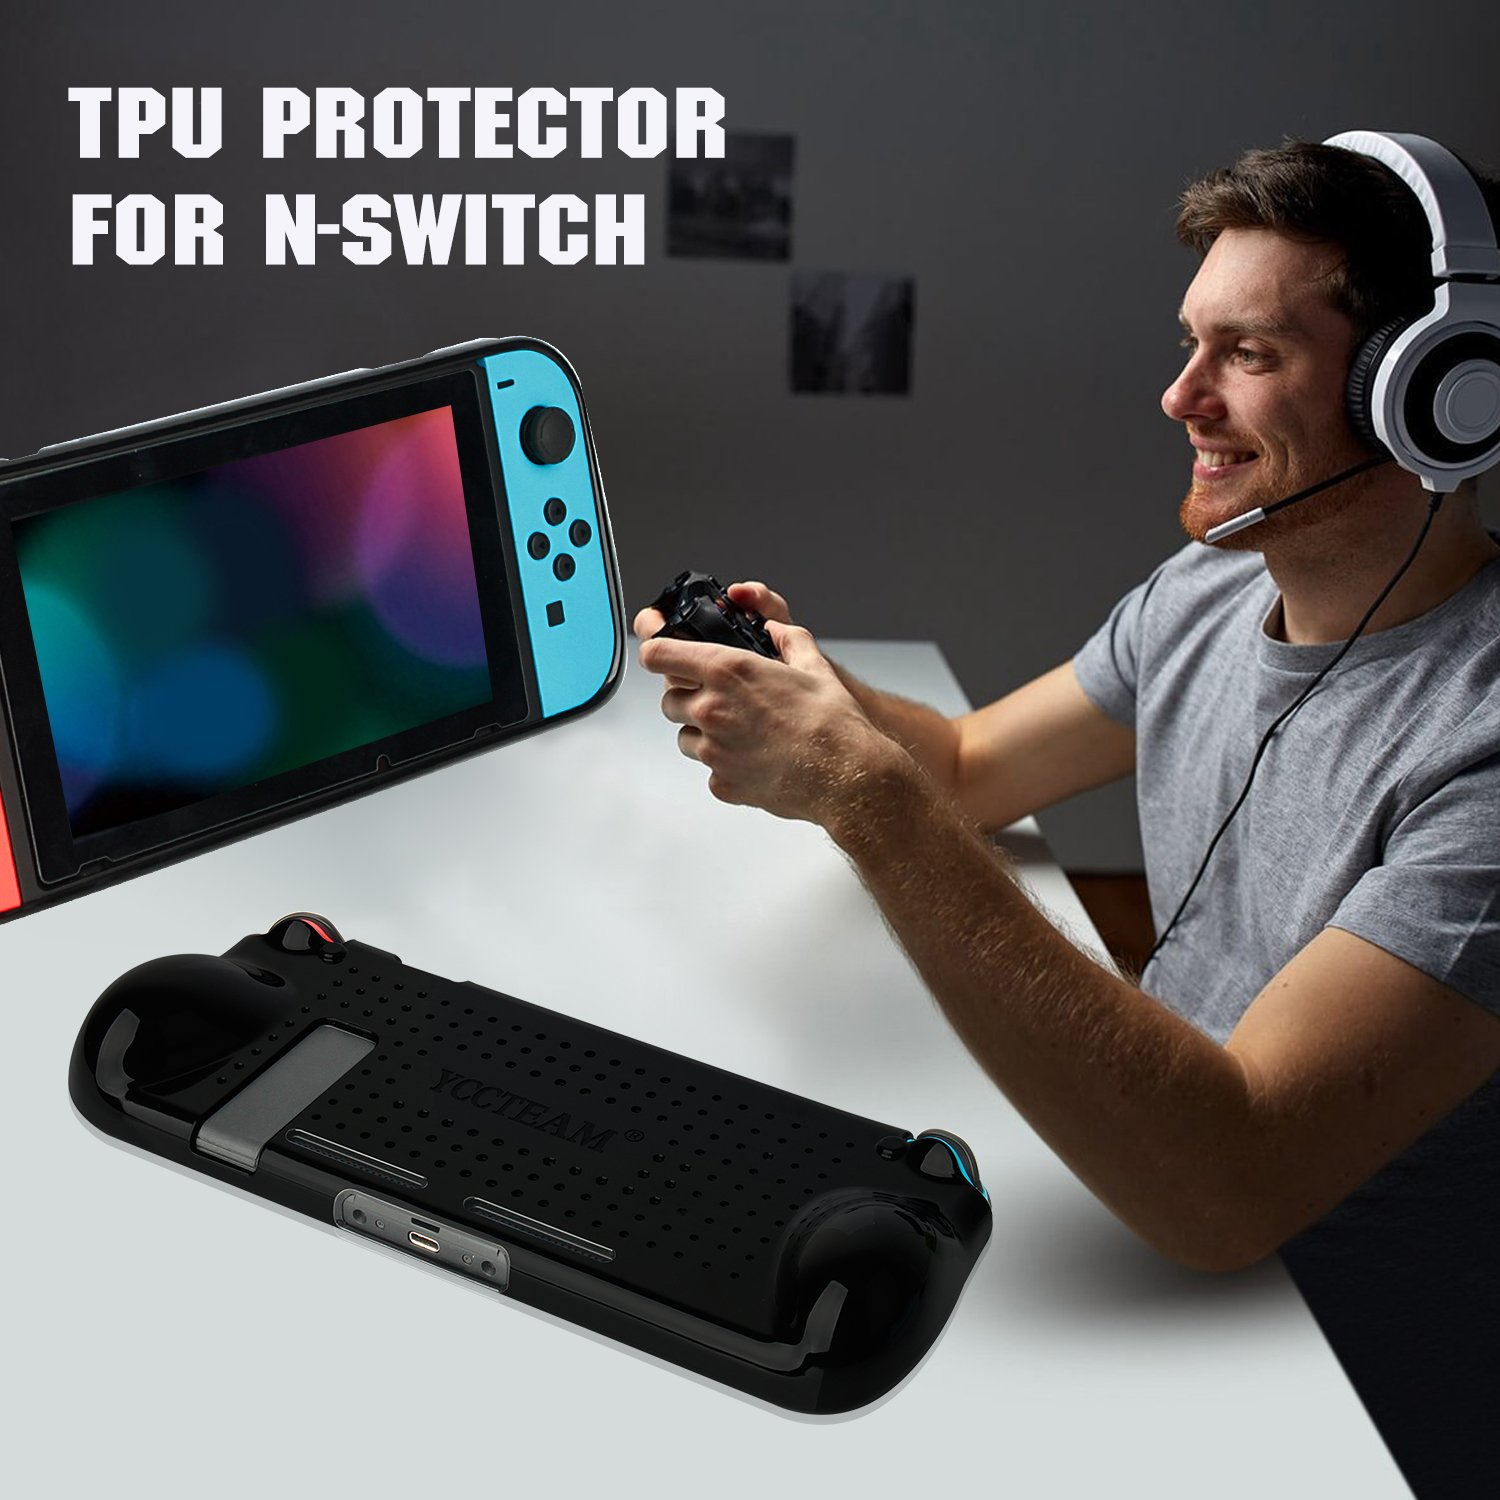 Switch Cover Protector, Heat Dissipation Comfortable Shock Protective Case for Nintendo Switch, Slim and Light